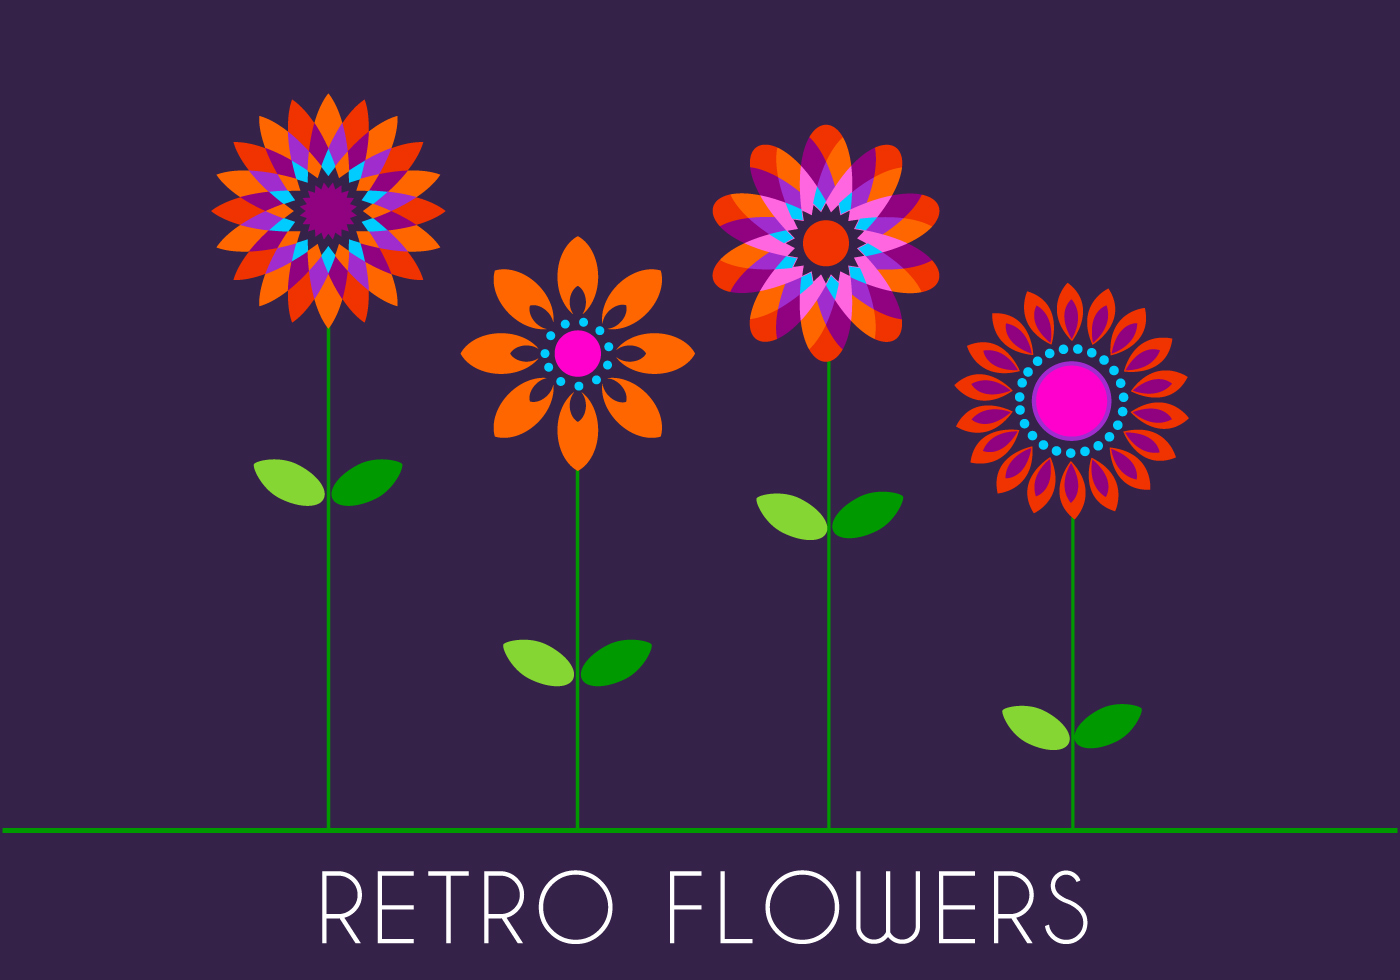 Stylish Wallpaper Heart Retro 70s Flowers Download Free Vector Art Stock